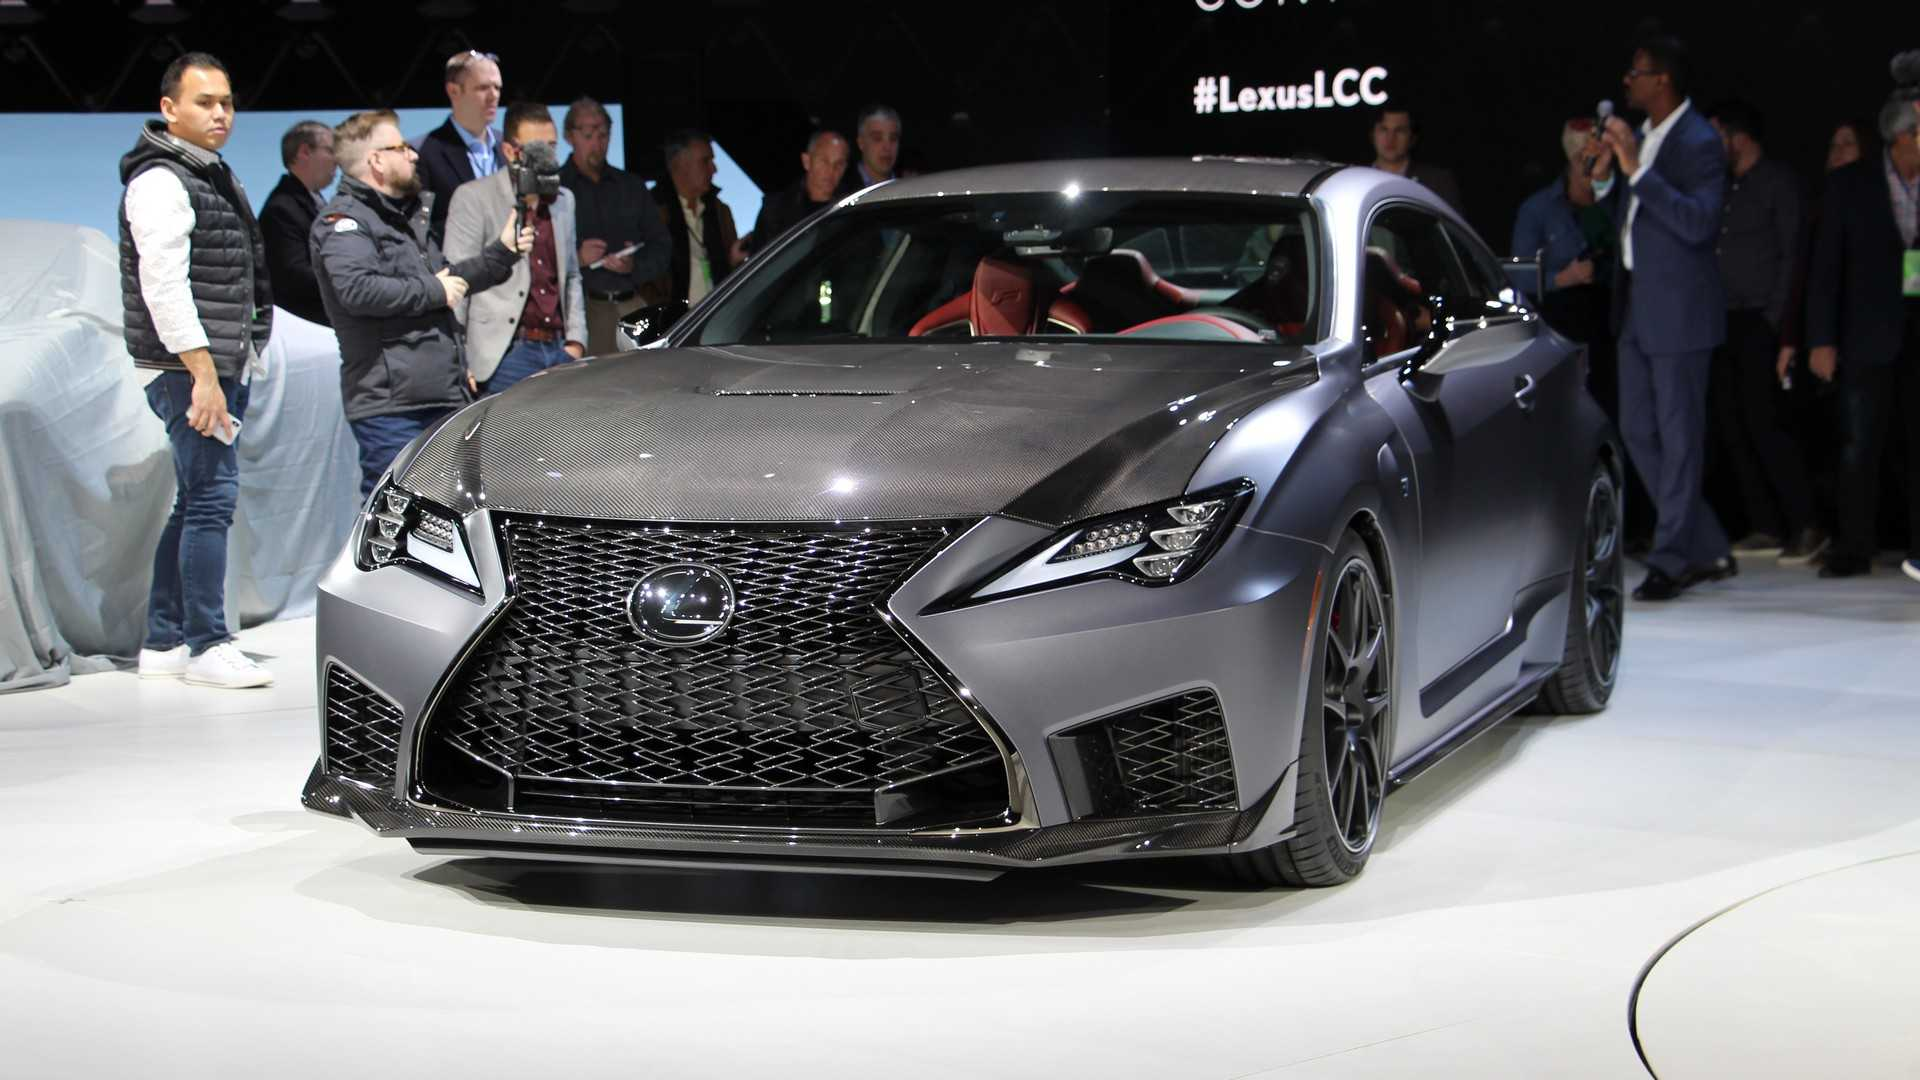 95 The Best Lexus For 2020 Review